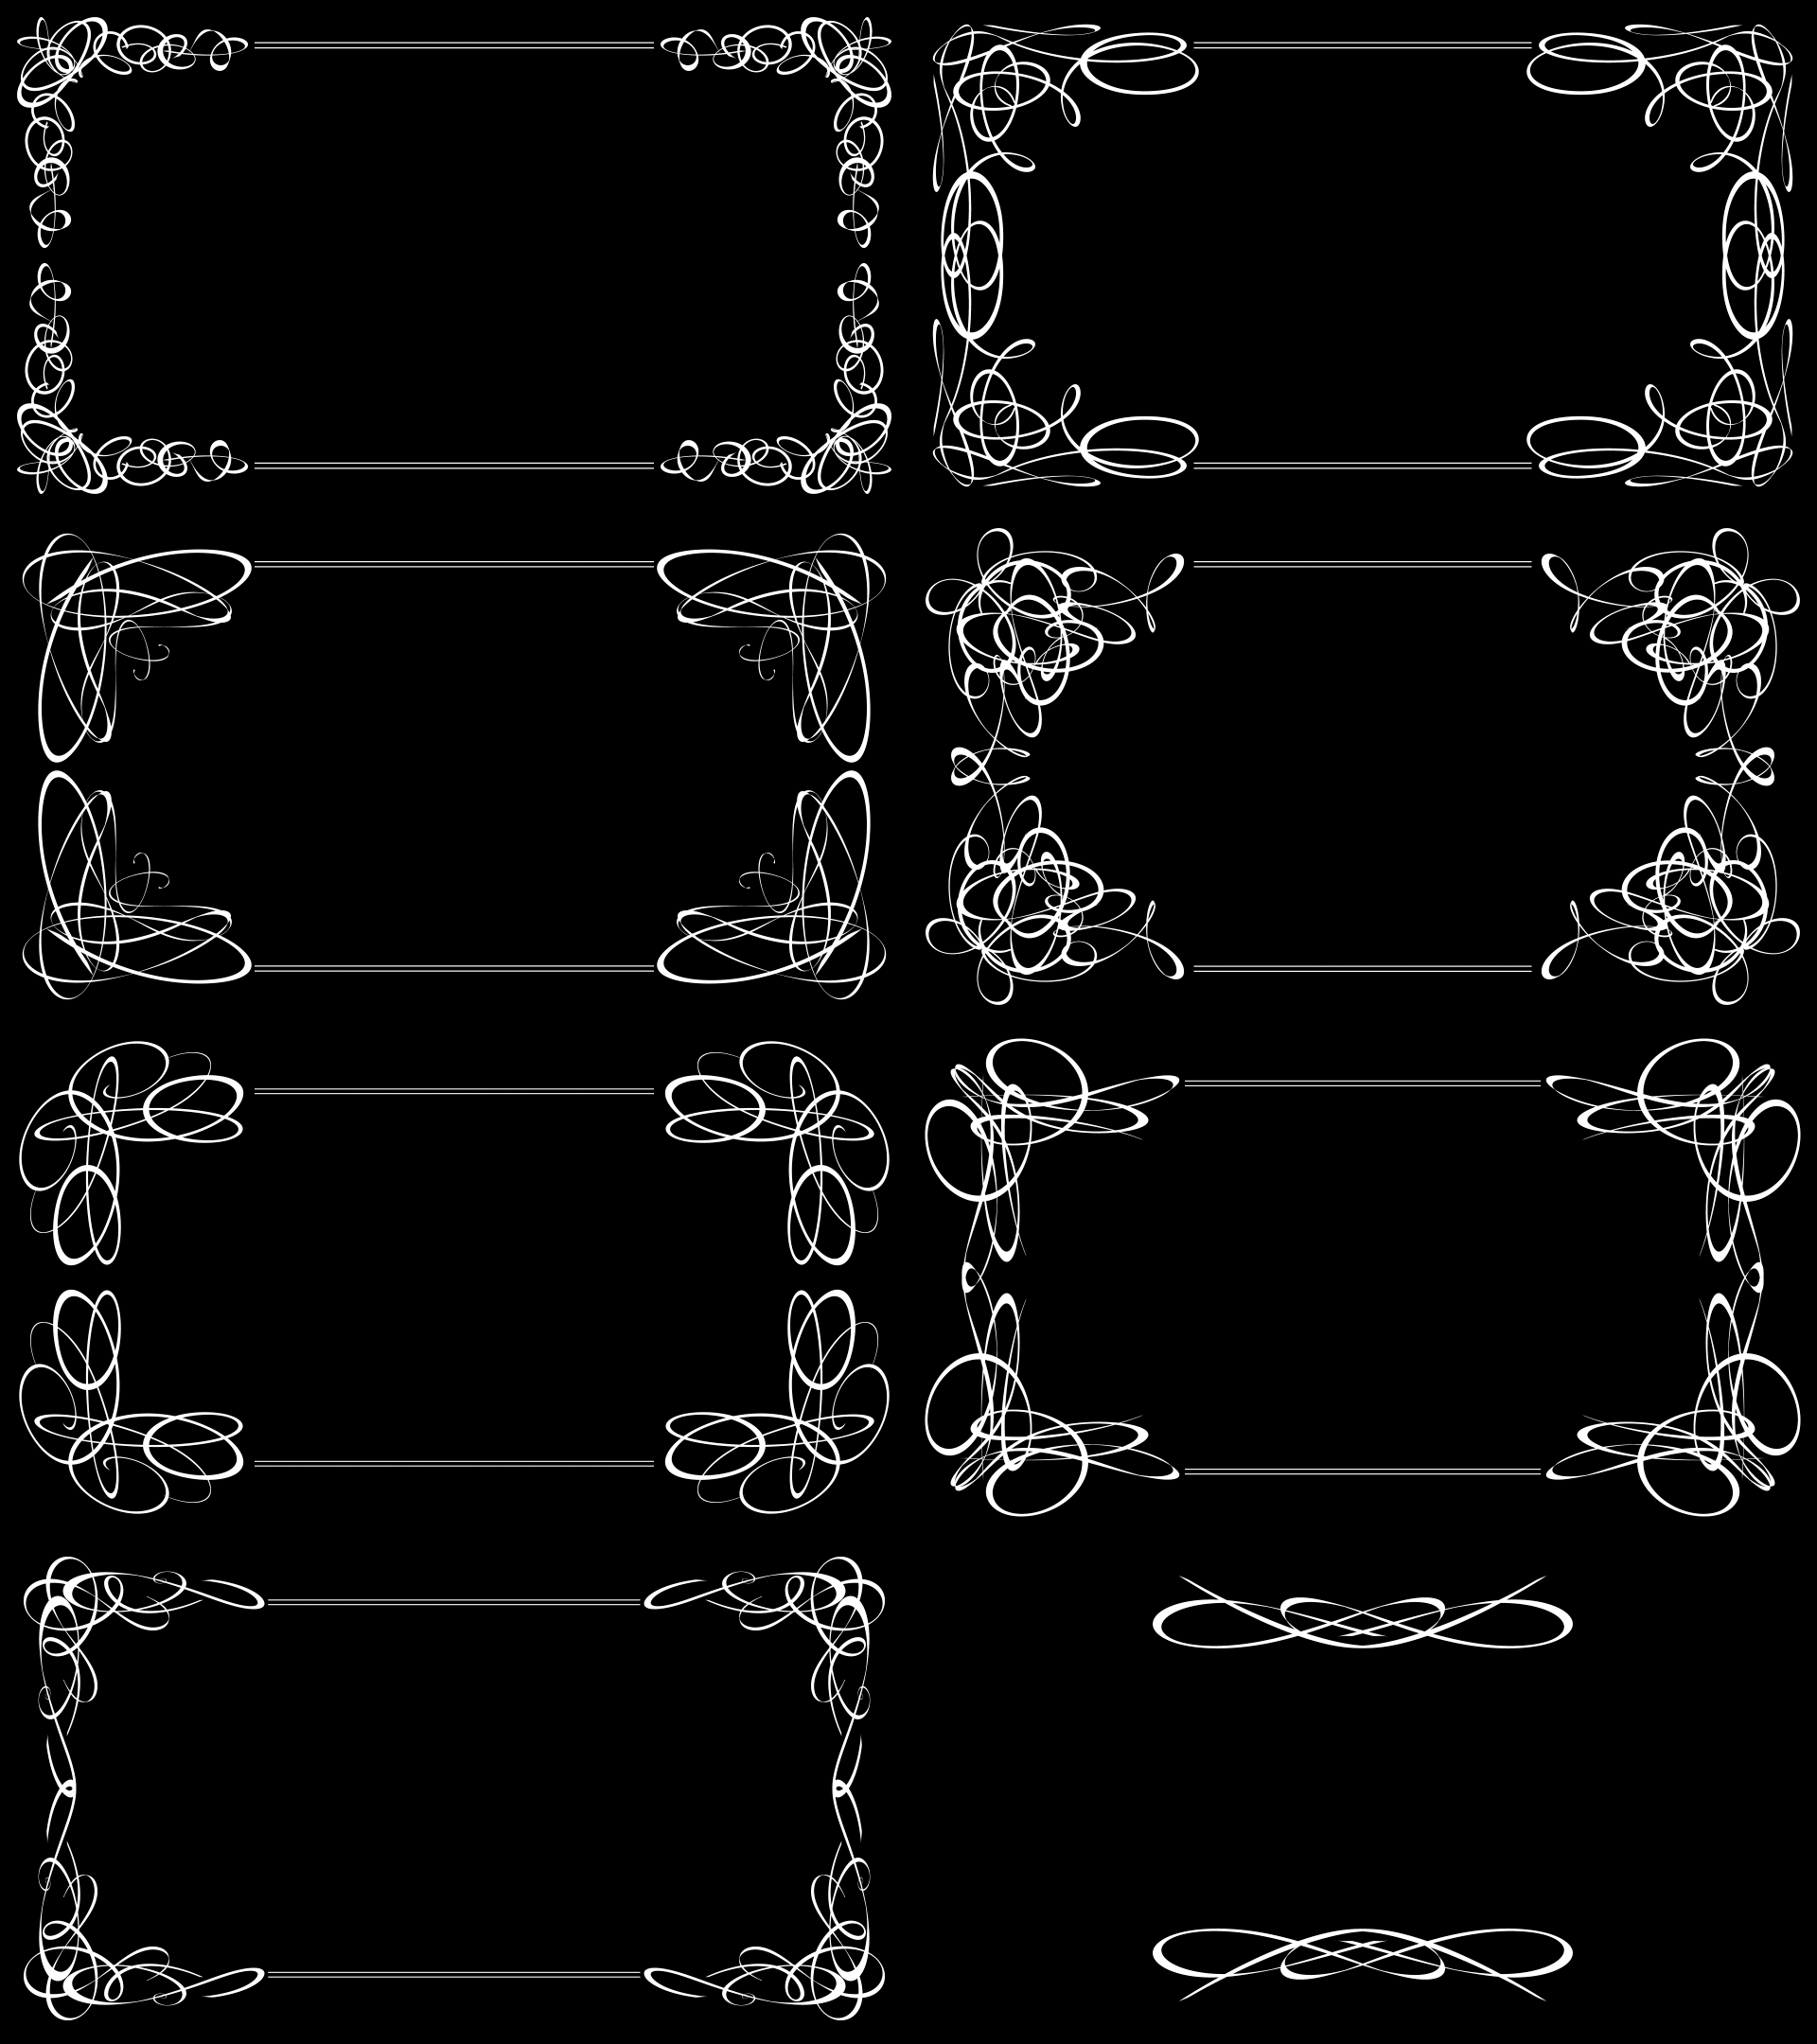 silent movie title card templates set of 8 by. Black Bedroom Furniture Sets. Home Design Ideas